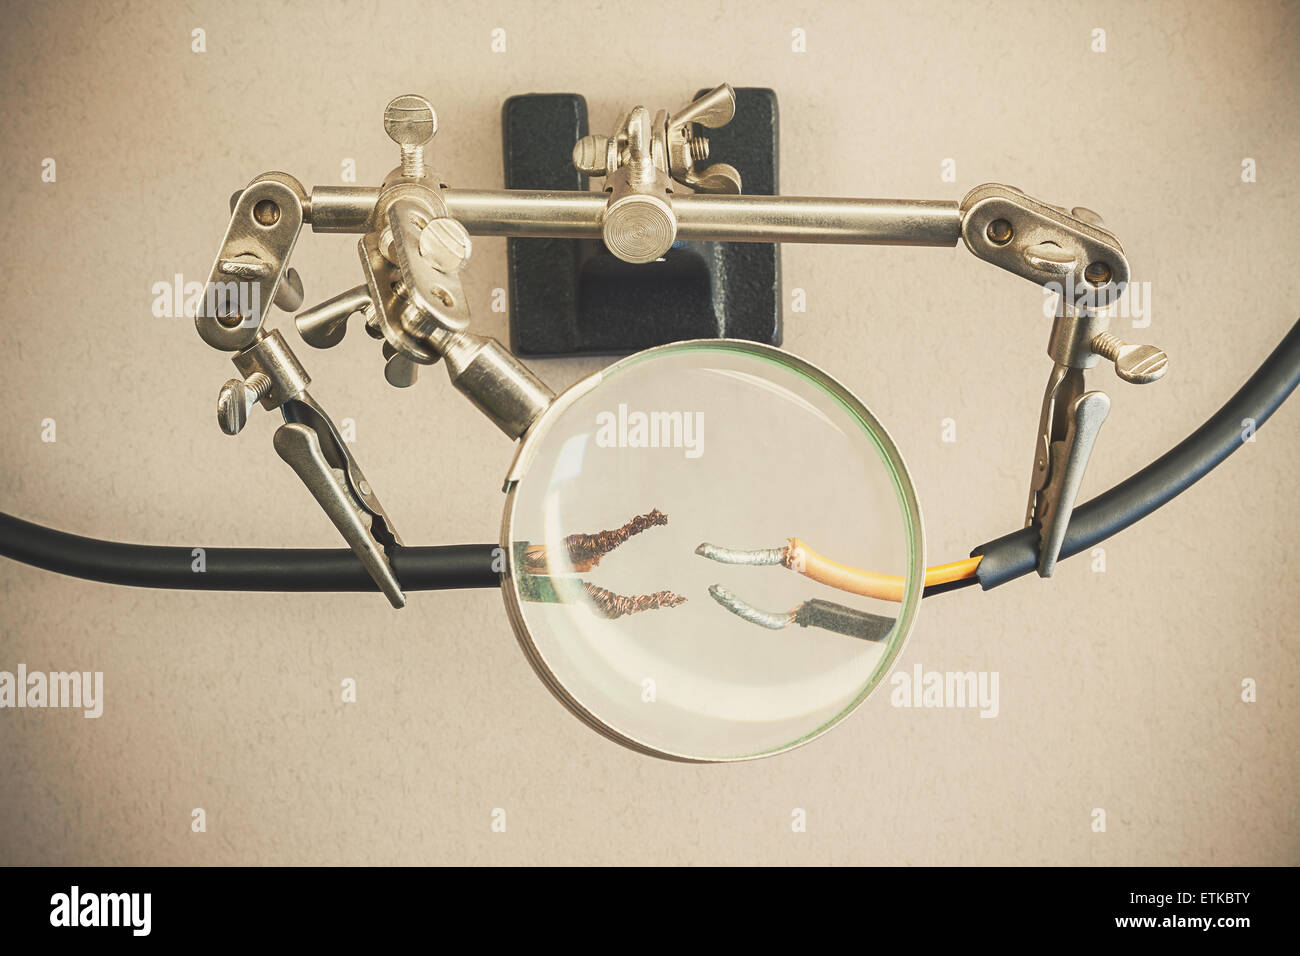 Electric Clamps Stockfotos & Electric Clamps Bilder - Alamy